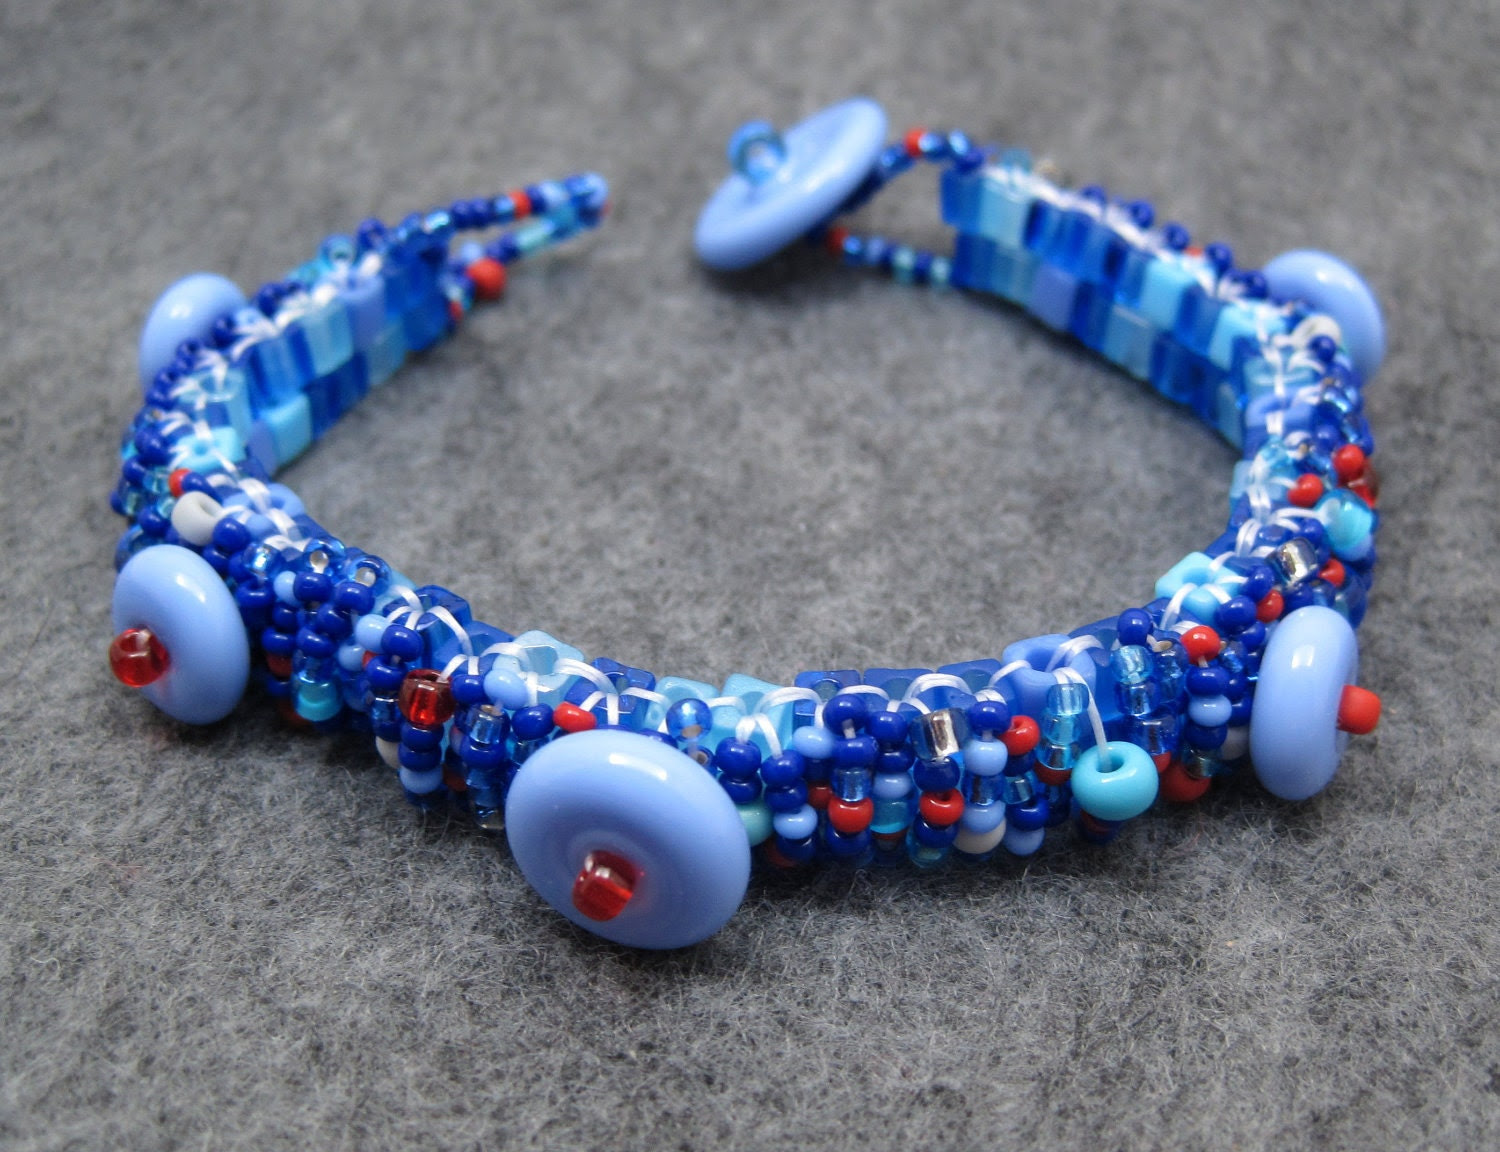 Beaded Cuff Bracelet - Skinny Nautical Blue Red Gray by randomcreative on Etsy - randomcreative